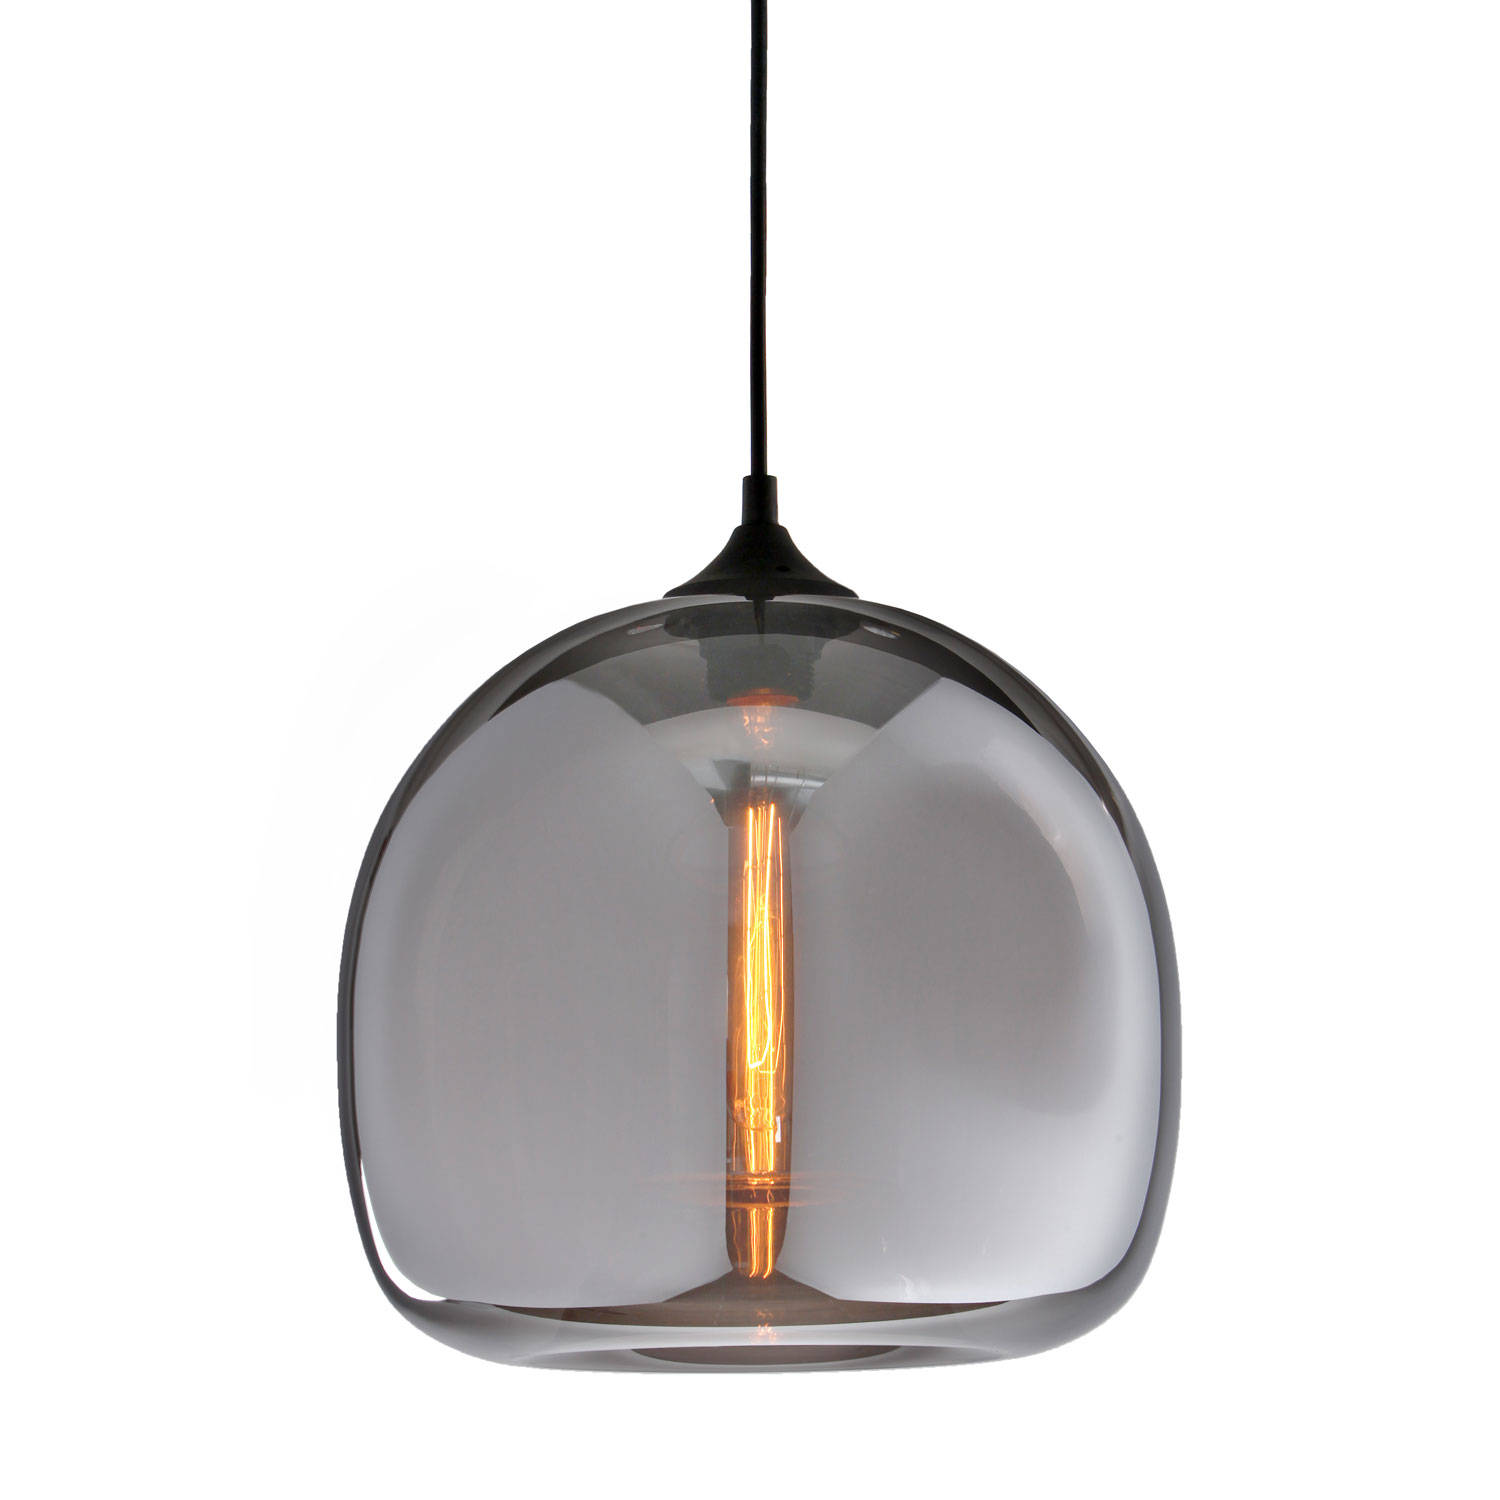 String Of Lights Outdoor picture on caton smoked glass pendant with vintage bulb p 37448 with String Of Lights Outdoor, Outdoor Lighting ideas db81023343eaa4d8dc48082da14b2688